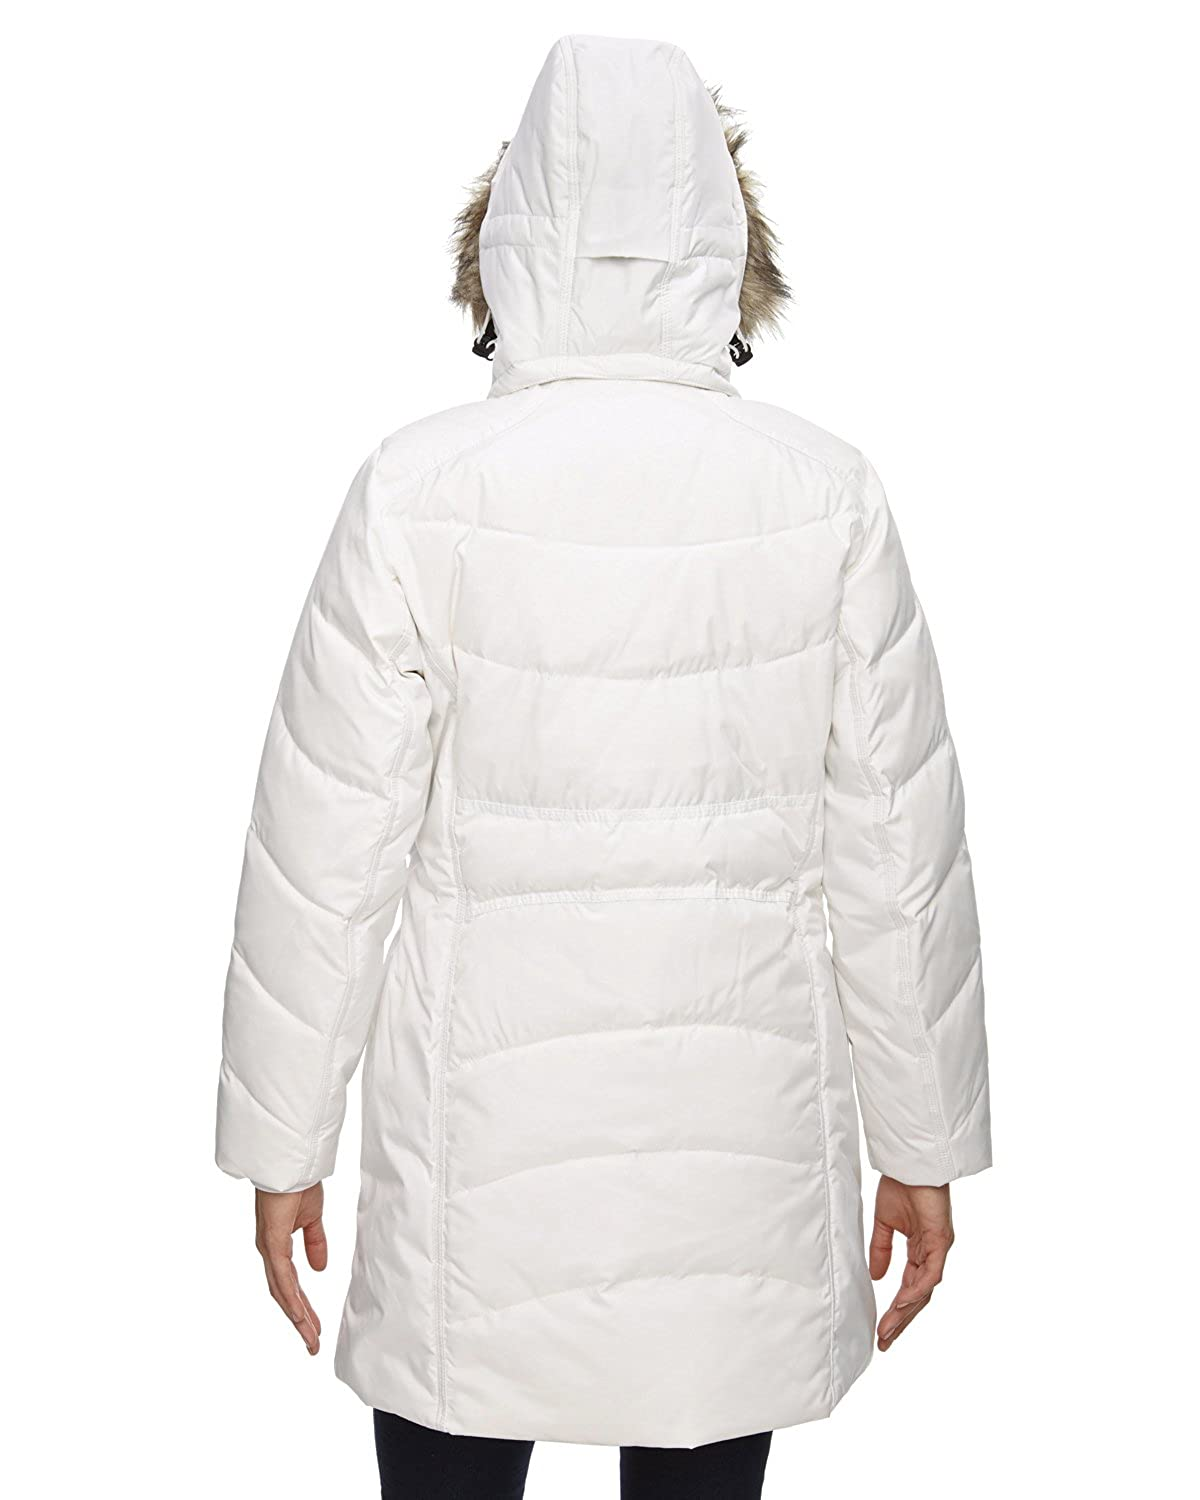 Ash City - North End North End Ladies Boreal Down Jacket Faux Fur Trim 78179